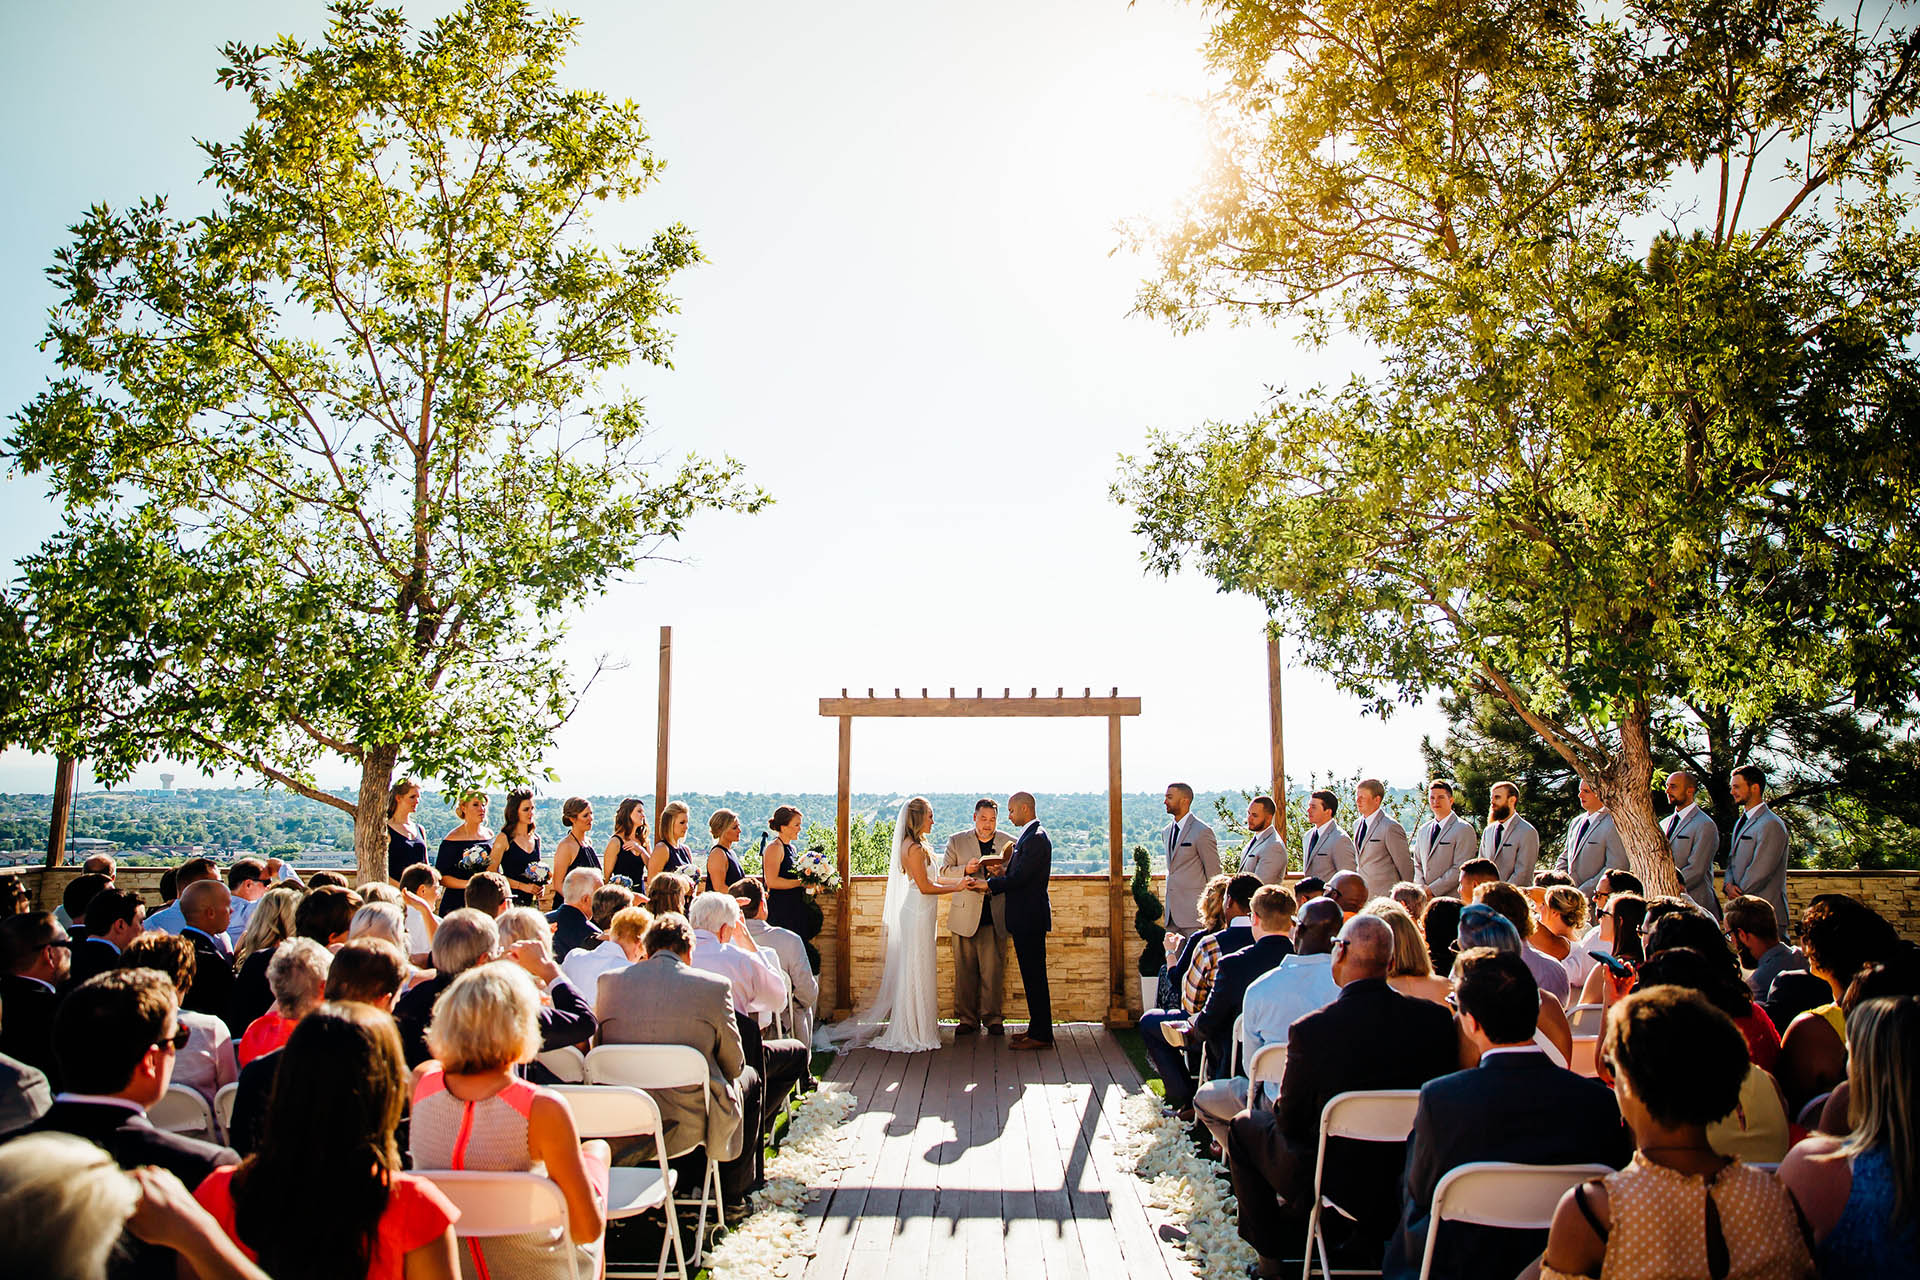 Incredible views from your terrace ceremony